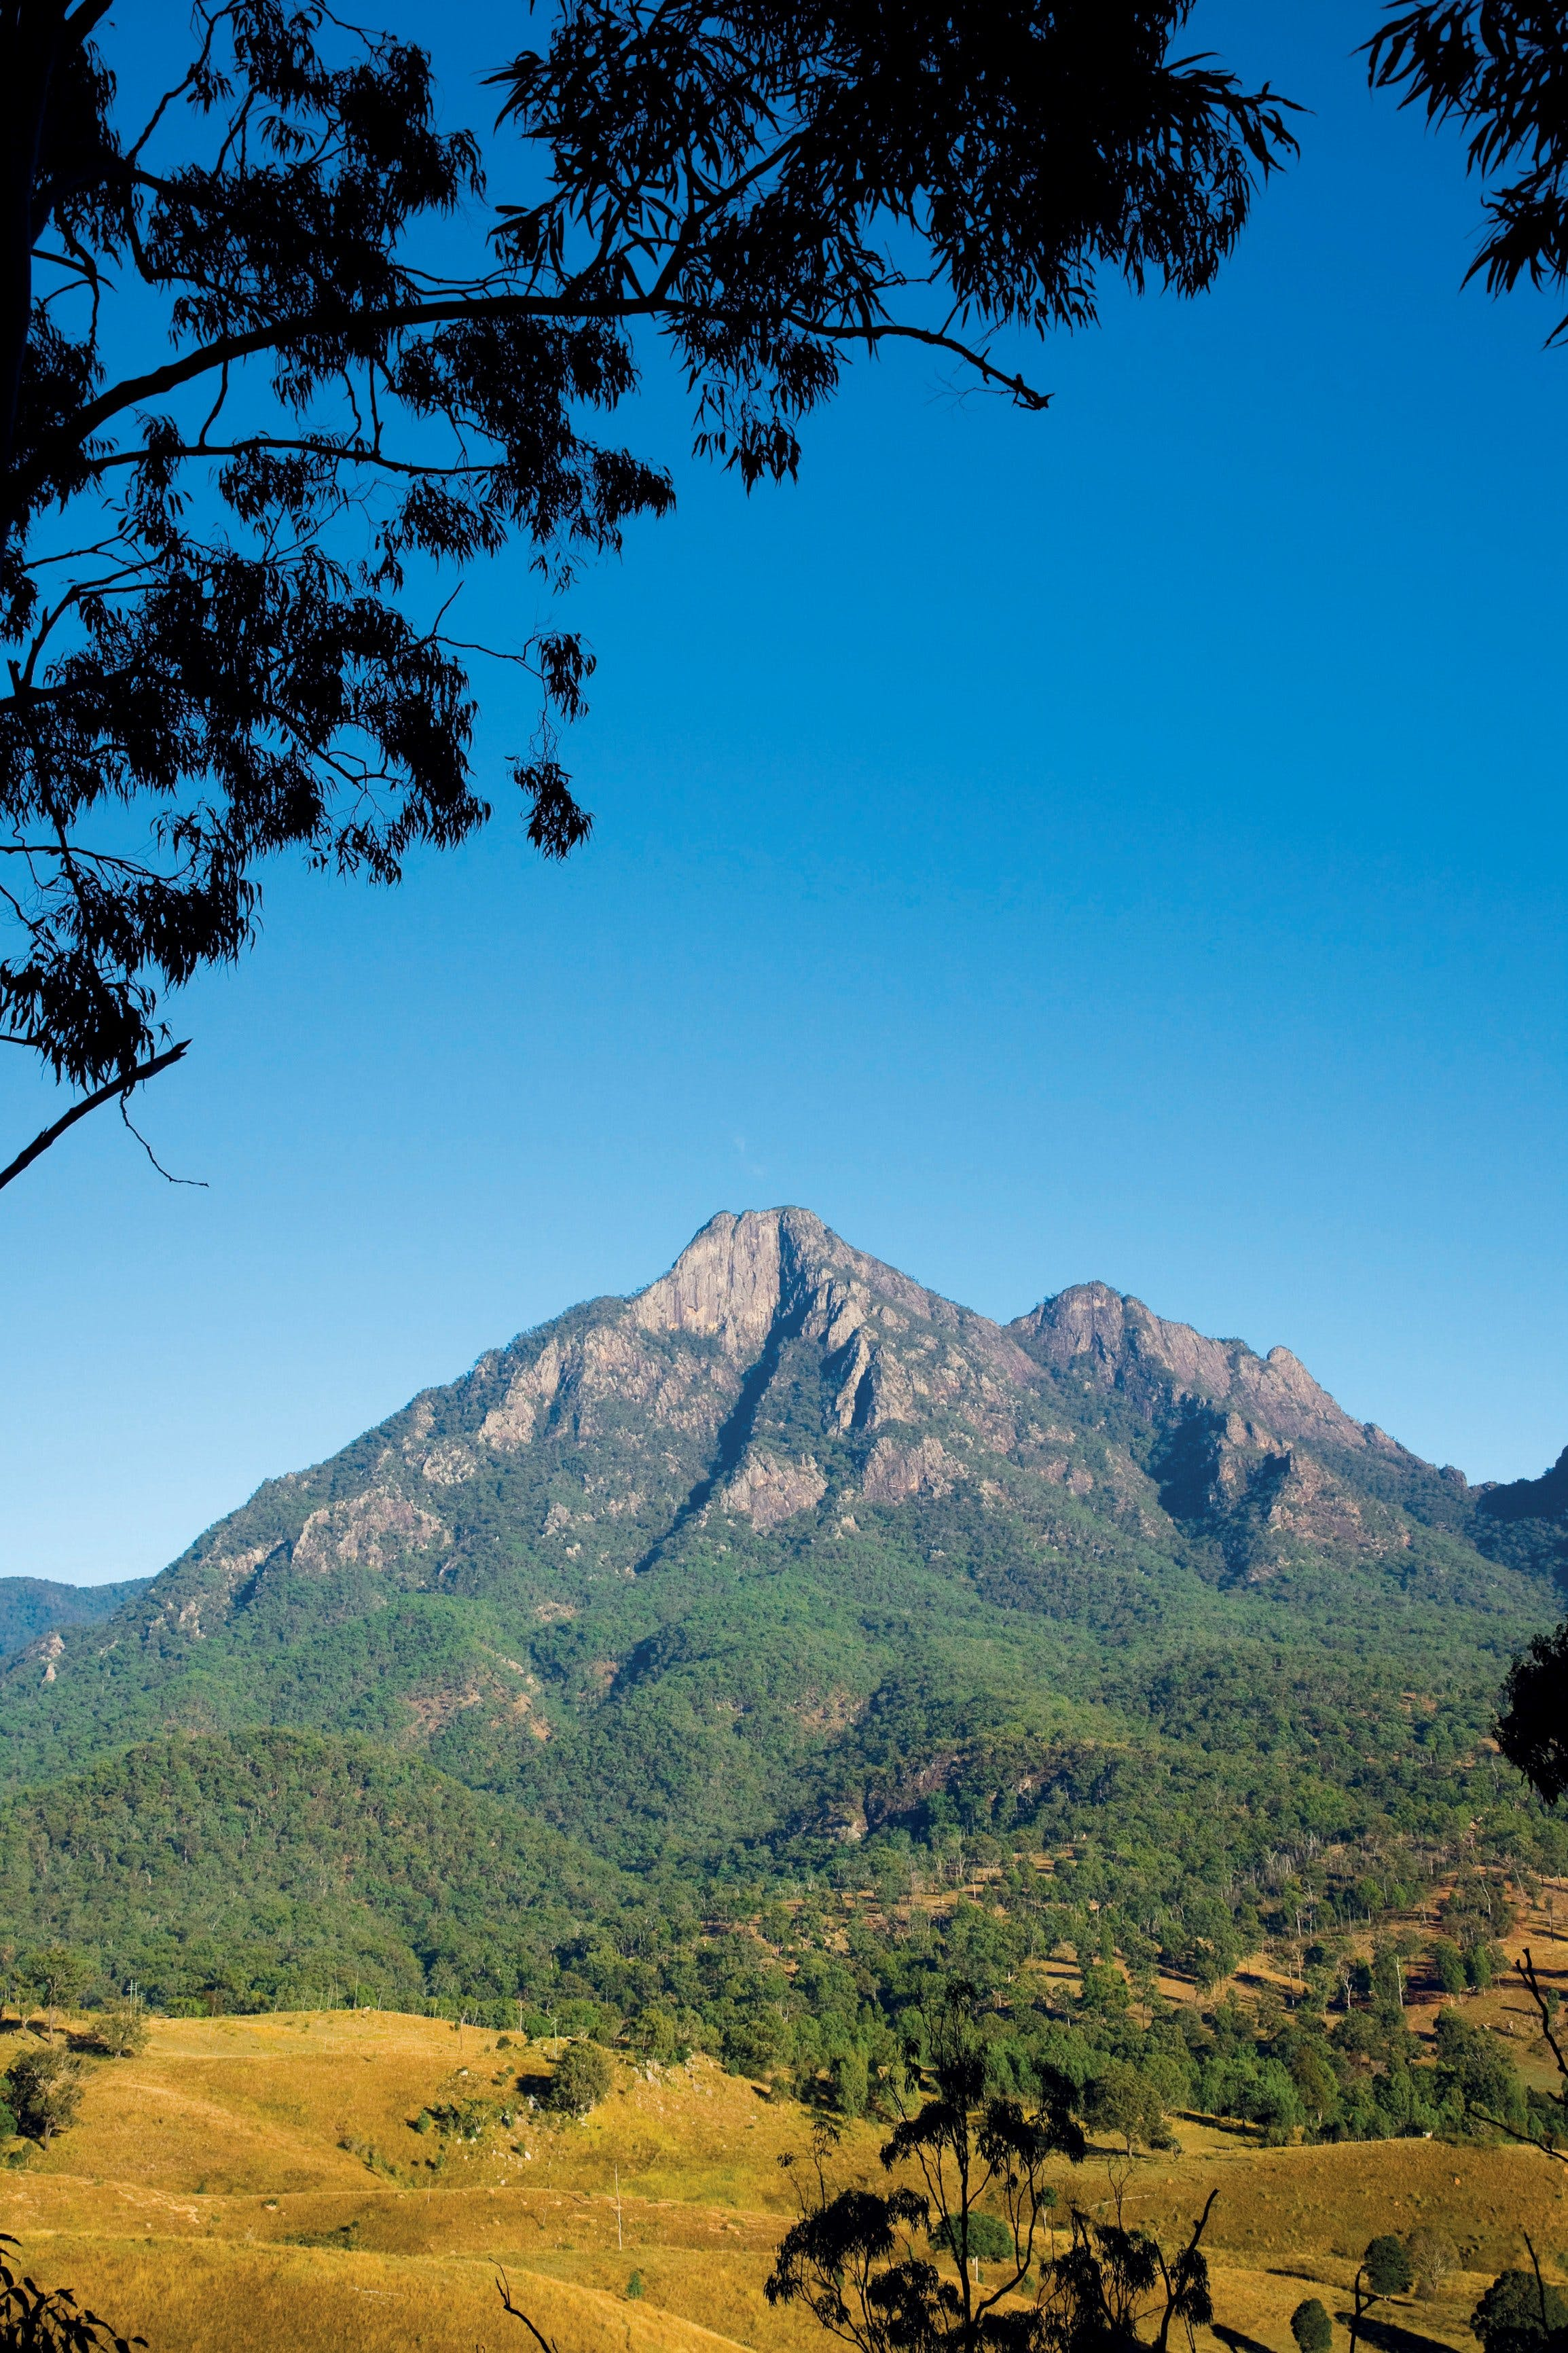 Mount Barney National Park Logo and Images